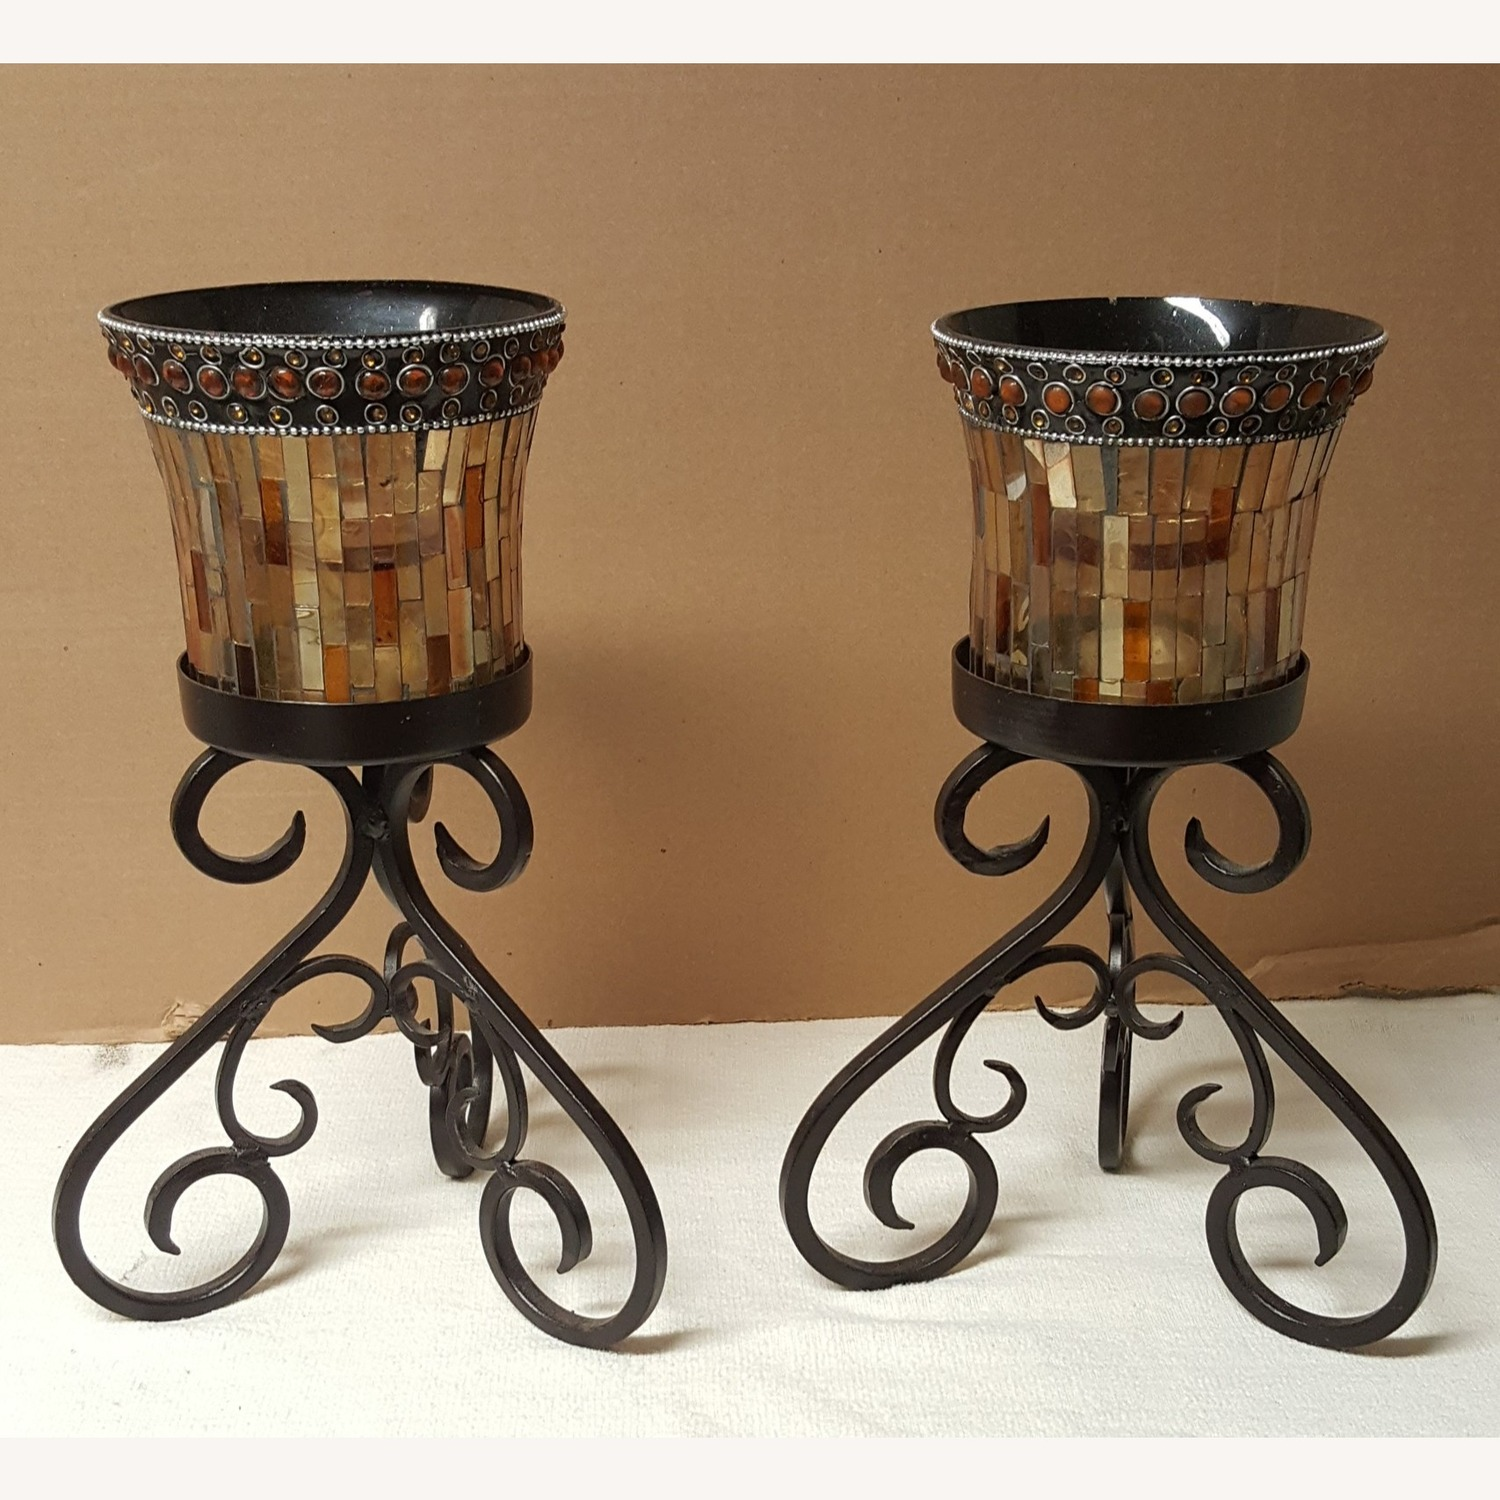 Mosaic Glass Dining-Table Candle Holders - image-1